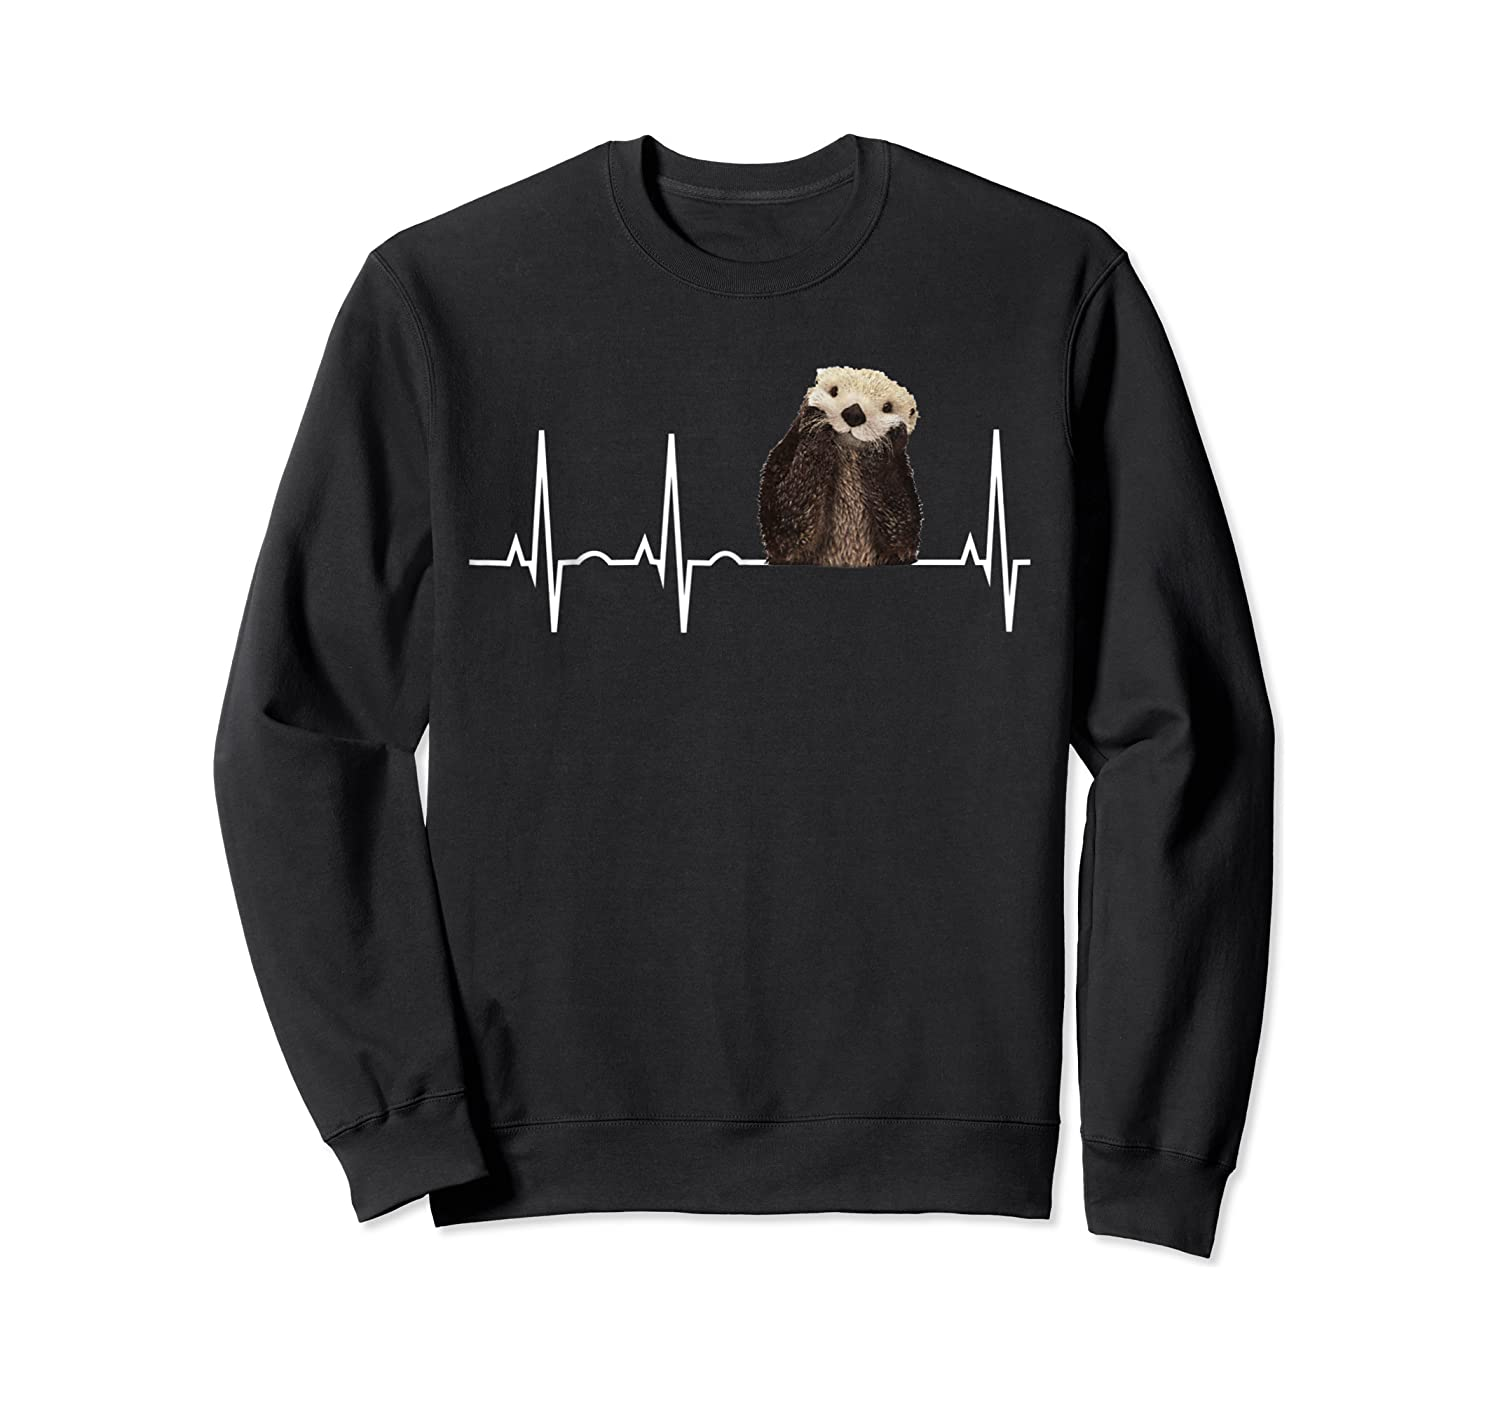 Otter Heartbea Cute Otter Lover Gift Shirts Crewneck Sweater